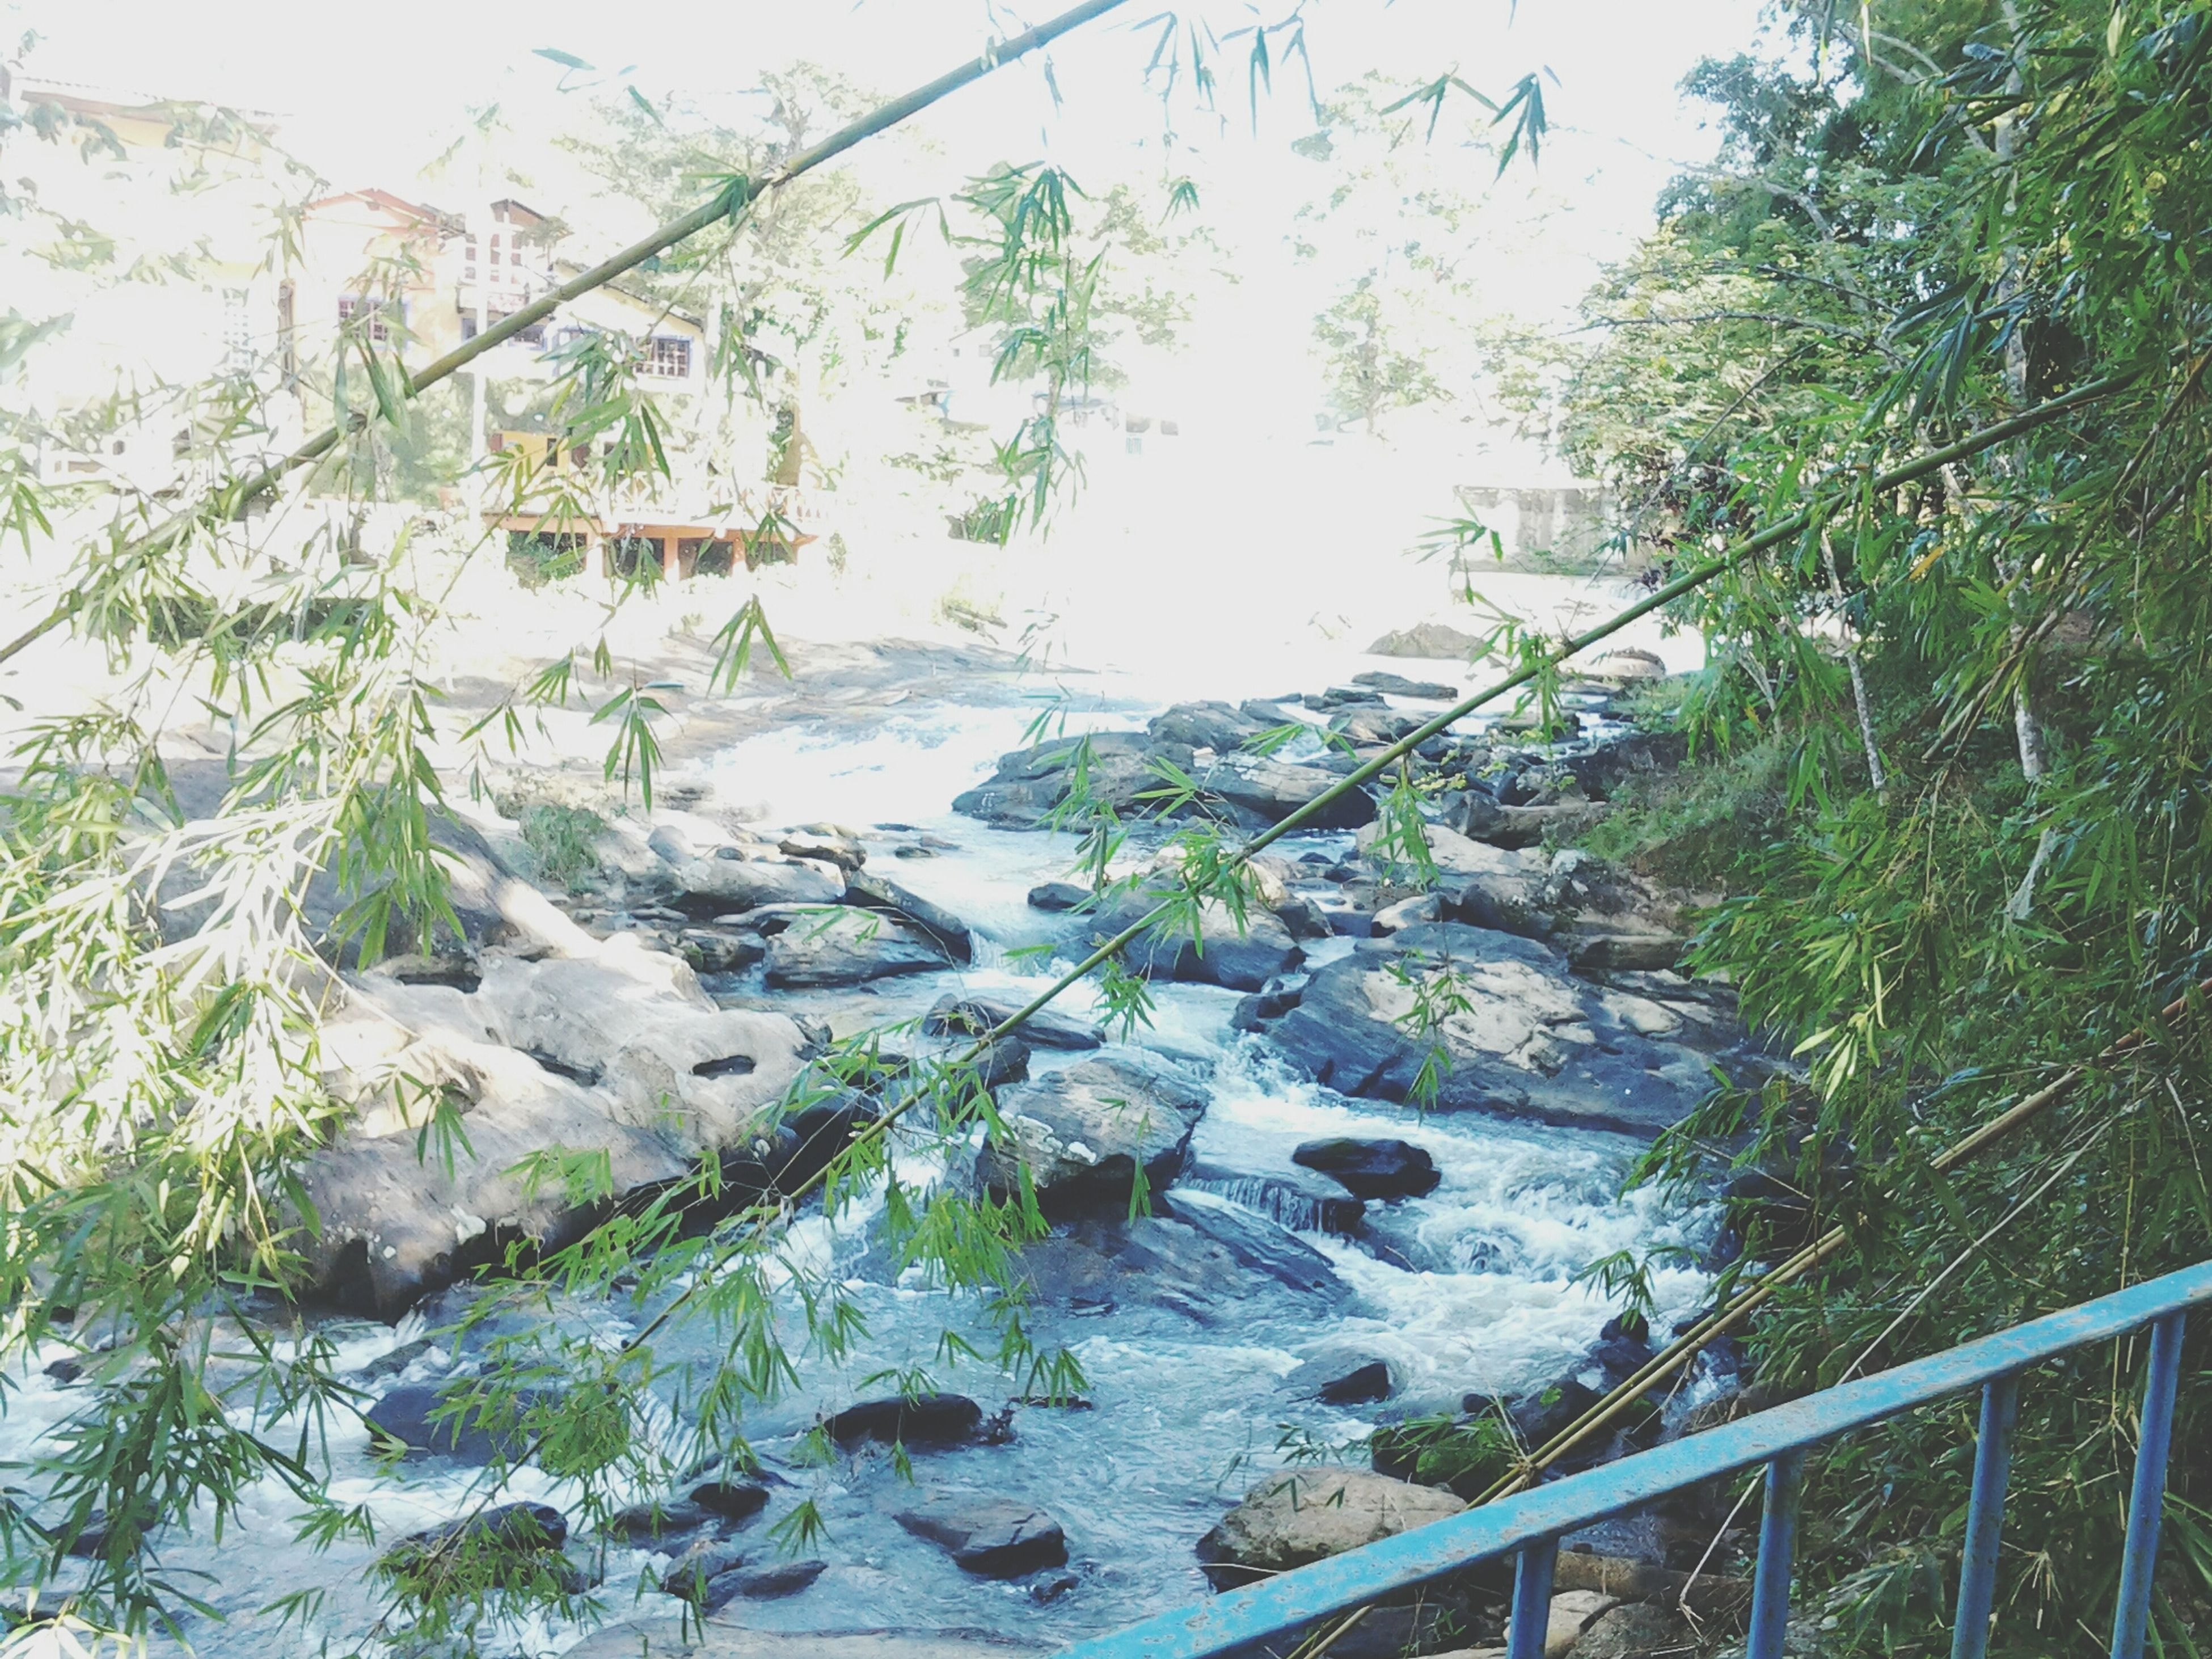 water, rock - object, tree, nature, tranquility, scenics, plant, beauty in nature, tranquil scene, clear sky, river, railing, growth, day, green color, no people, outdoors, built structure, mountain, flowing water